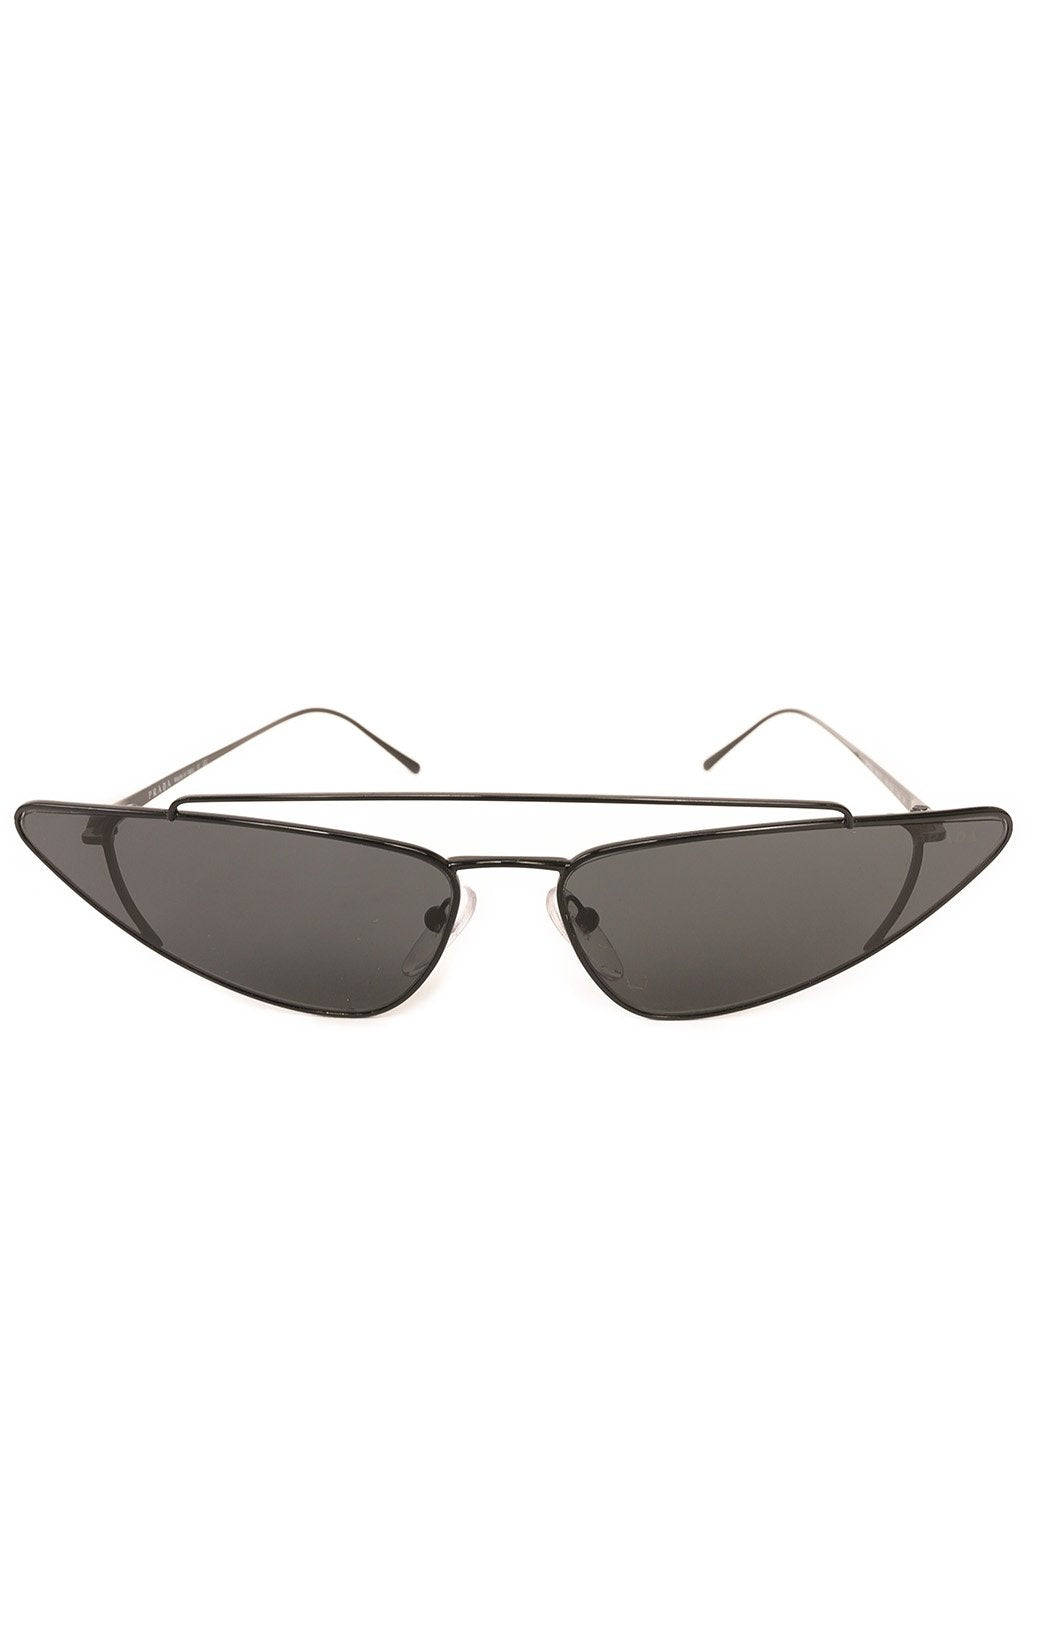 "Front view of PRADA Sunglasses  Size: 6"" W x 1.5"" H"